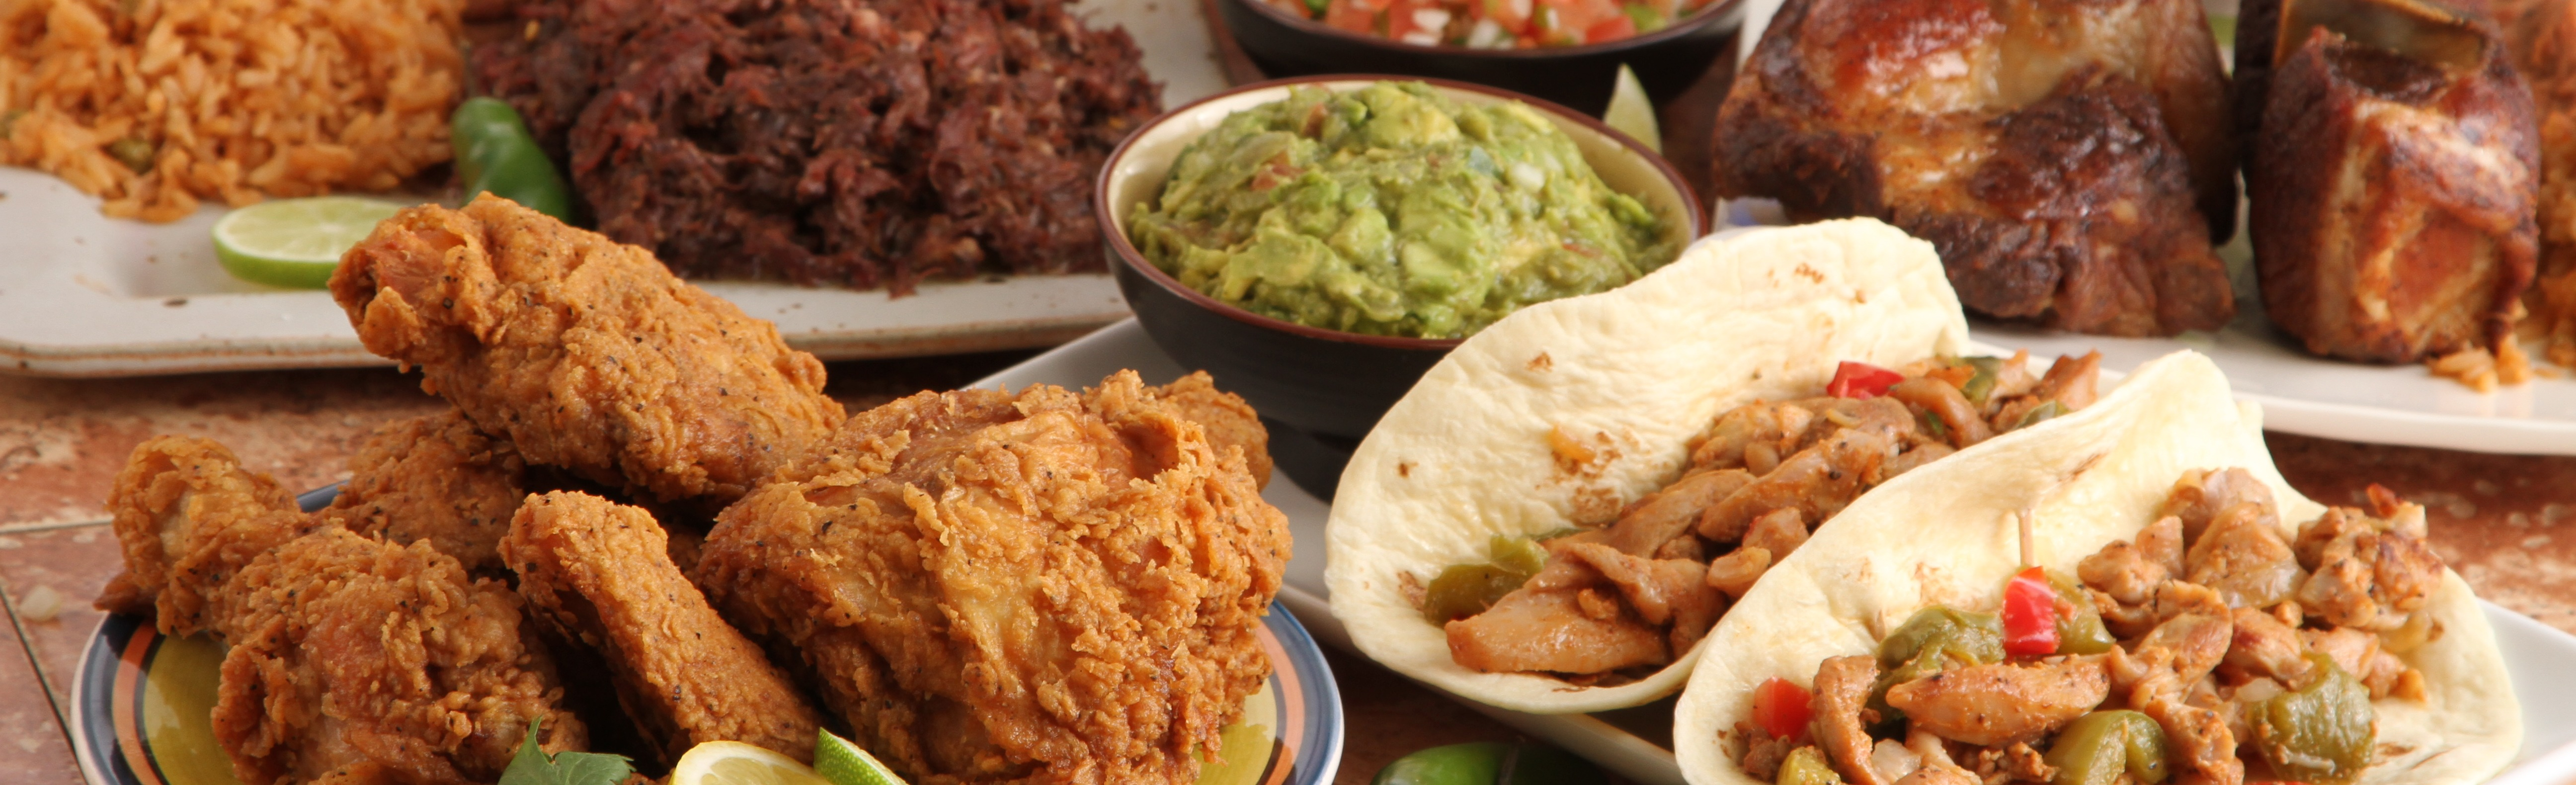 amigos catering platter